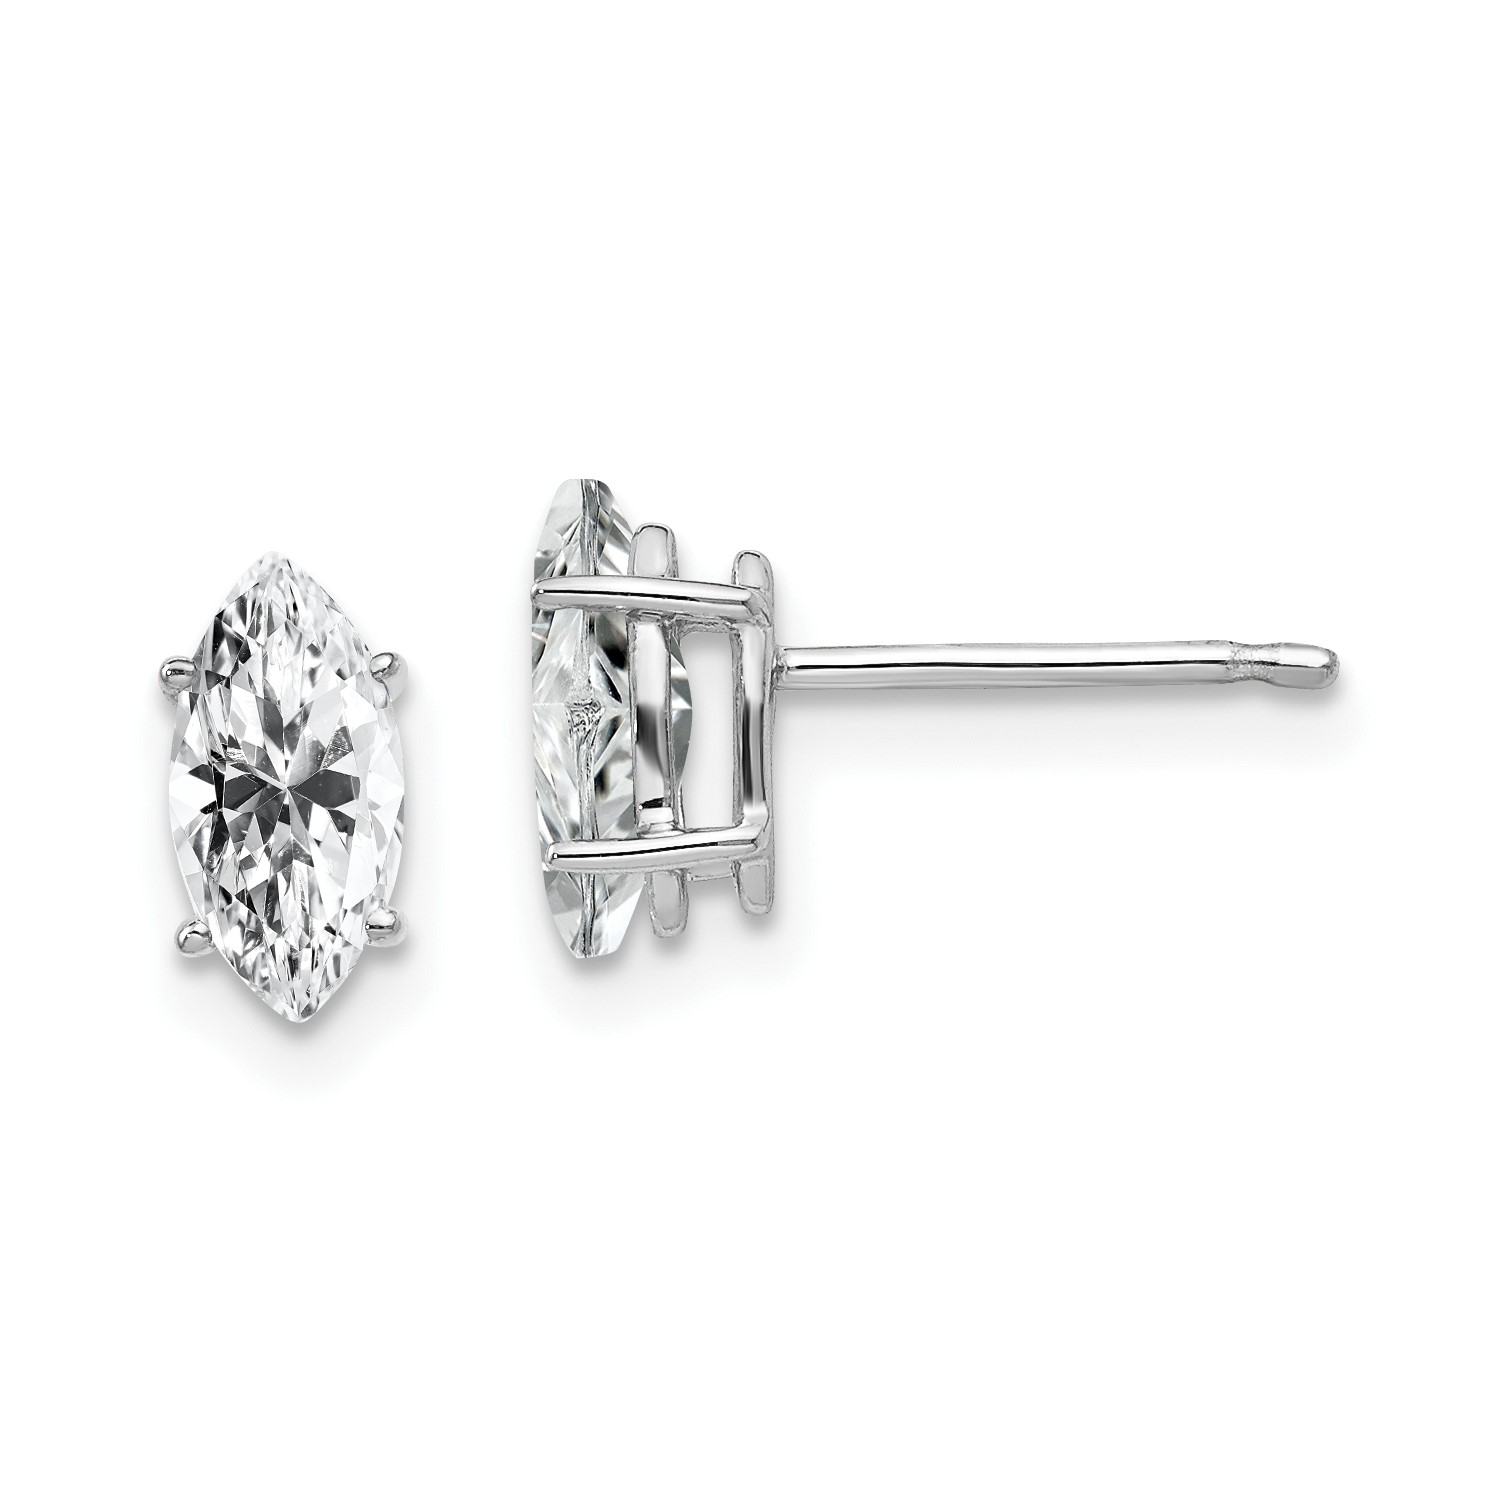 Image Is Loading 14k White Gold 8x4mm Marquise Cubic Zirconia Earrings